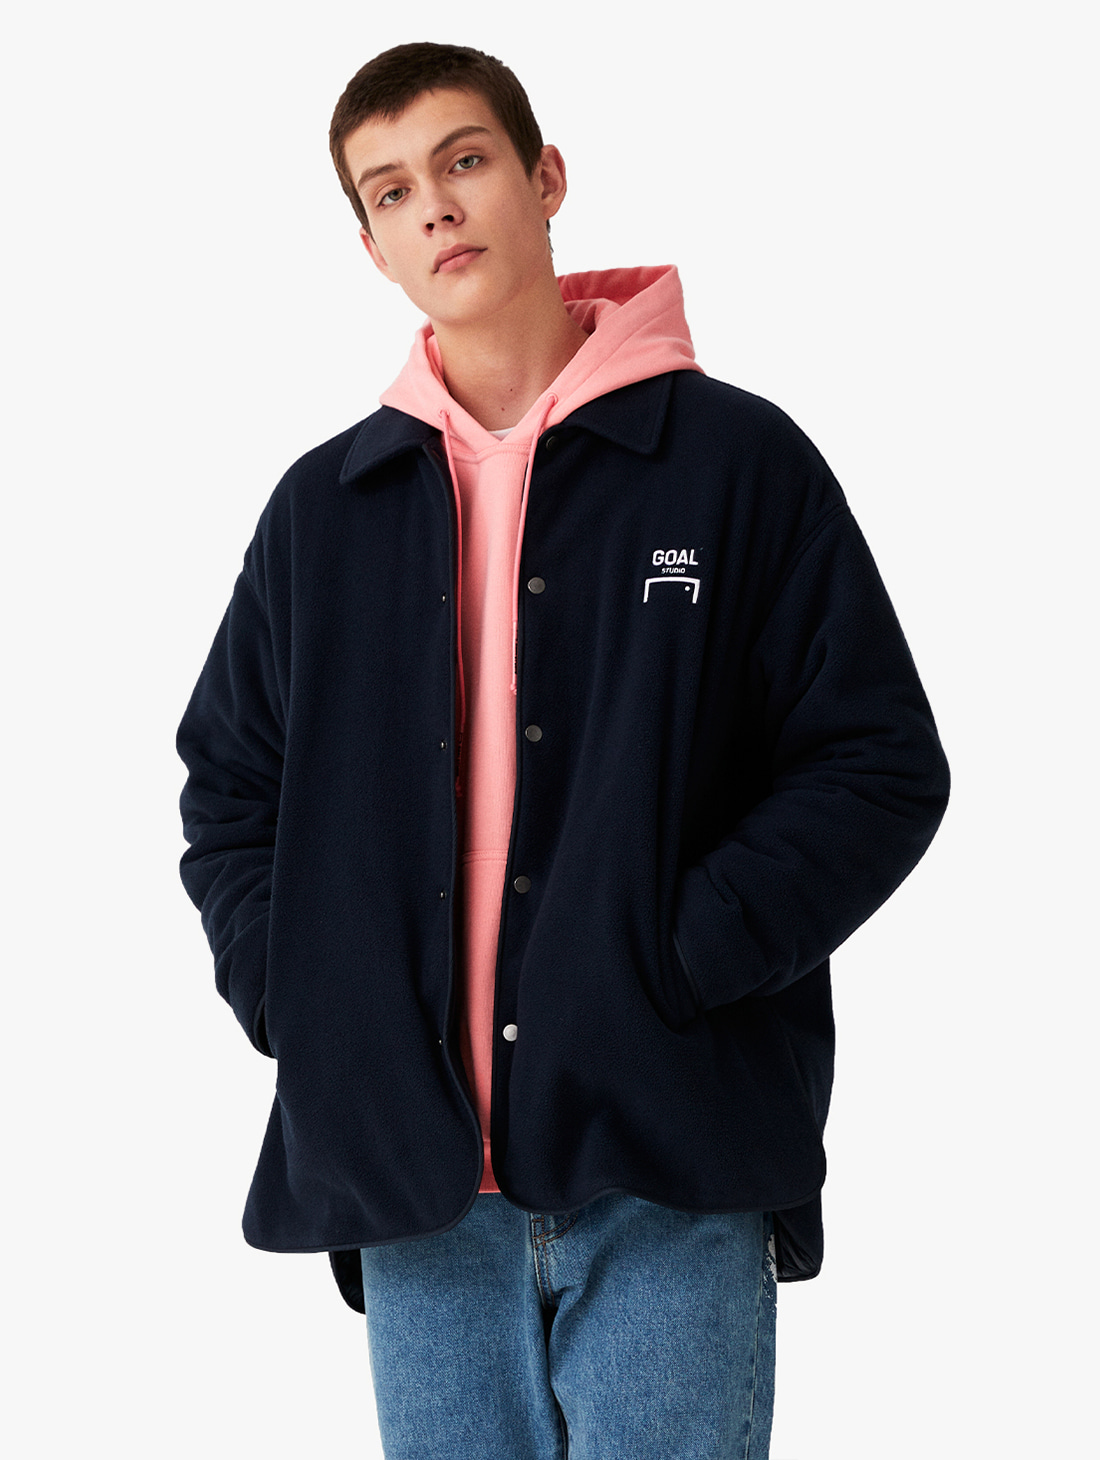 GOALSTUDIO OVERSIZED FLEECE SHIRTS JACKET (2 Colors)